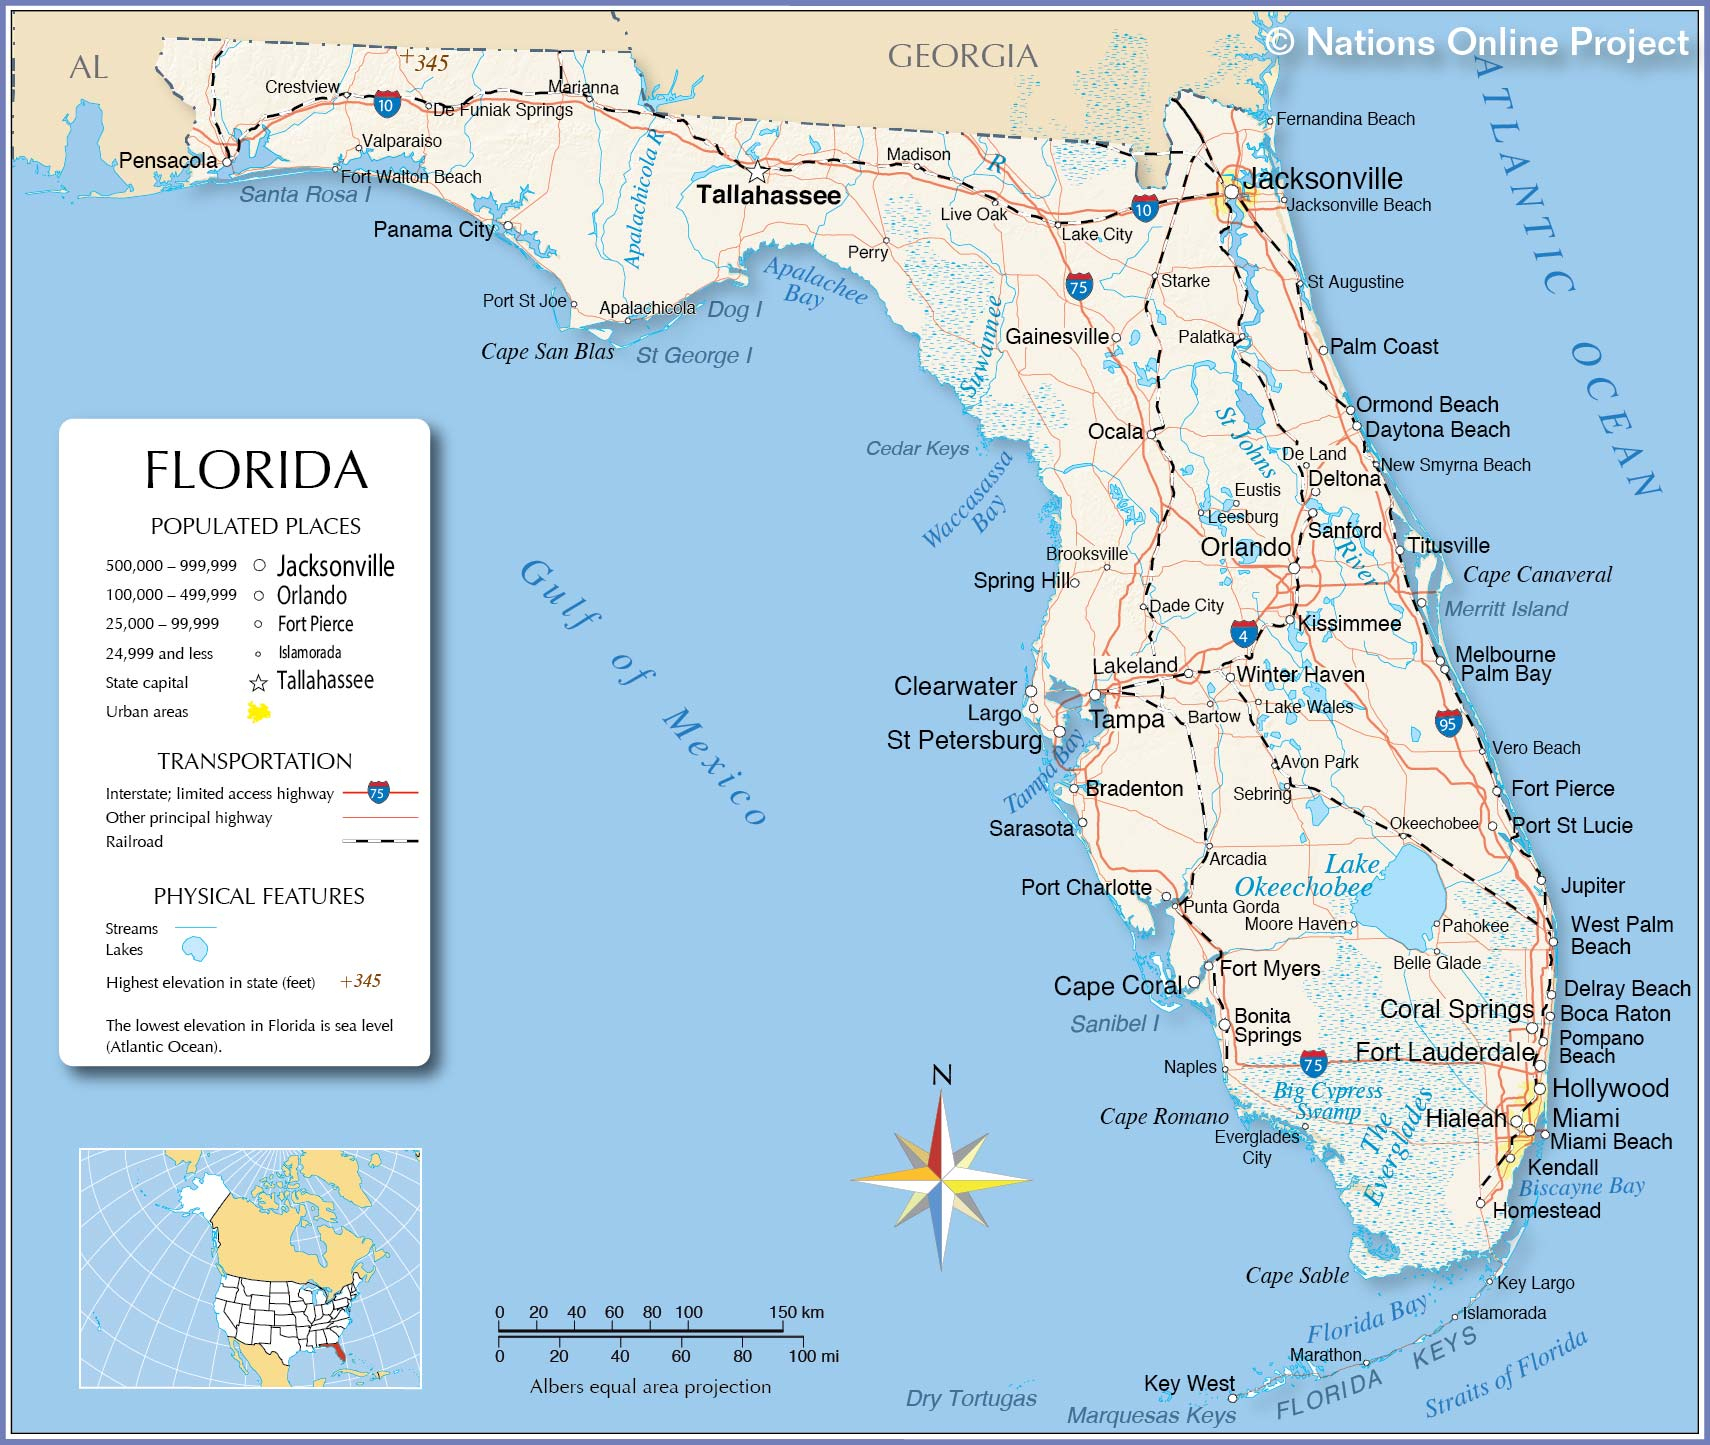 Reference Maps Of Florida, Usa - Nations Online Project - Show Sarasota Florida On A Map